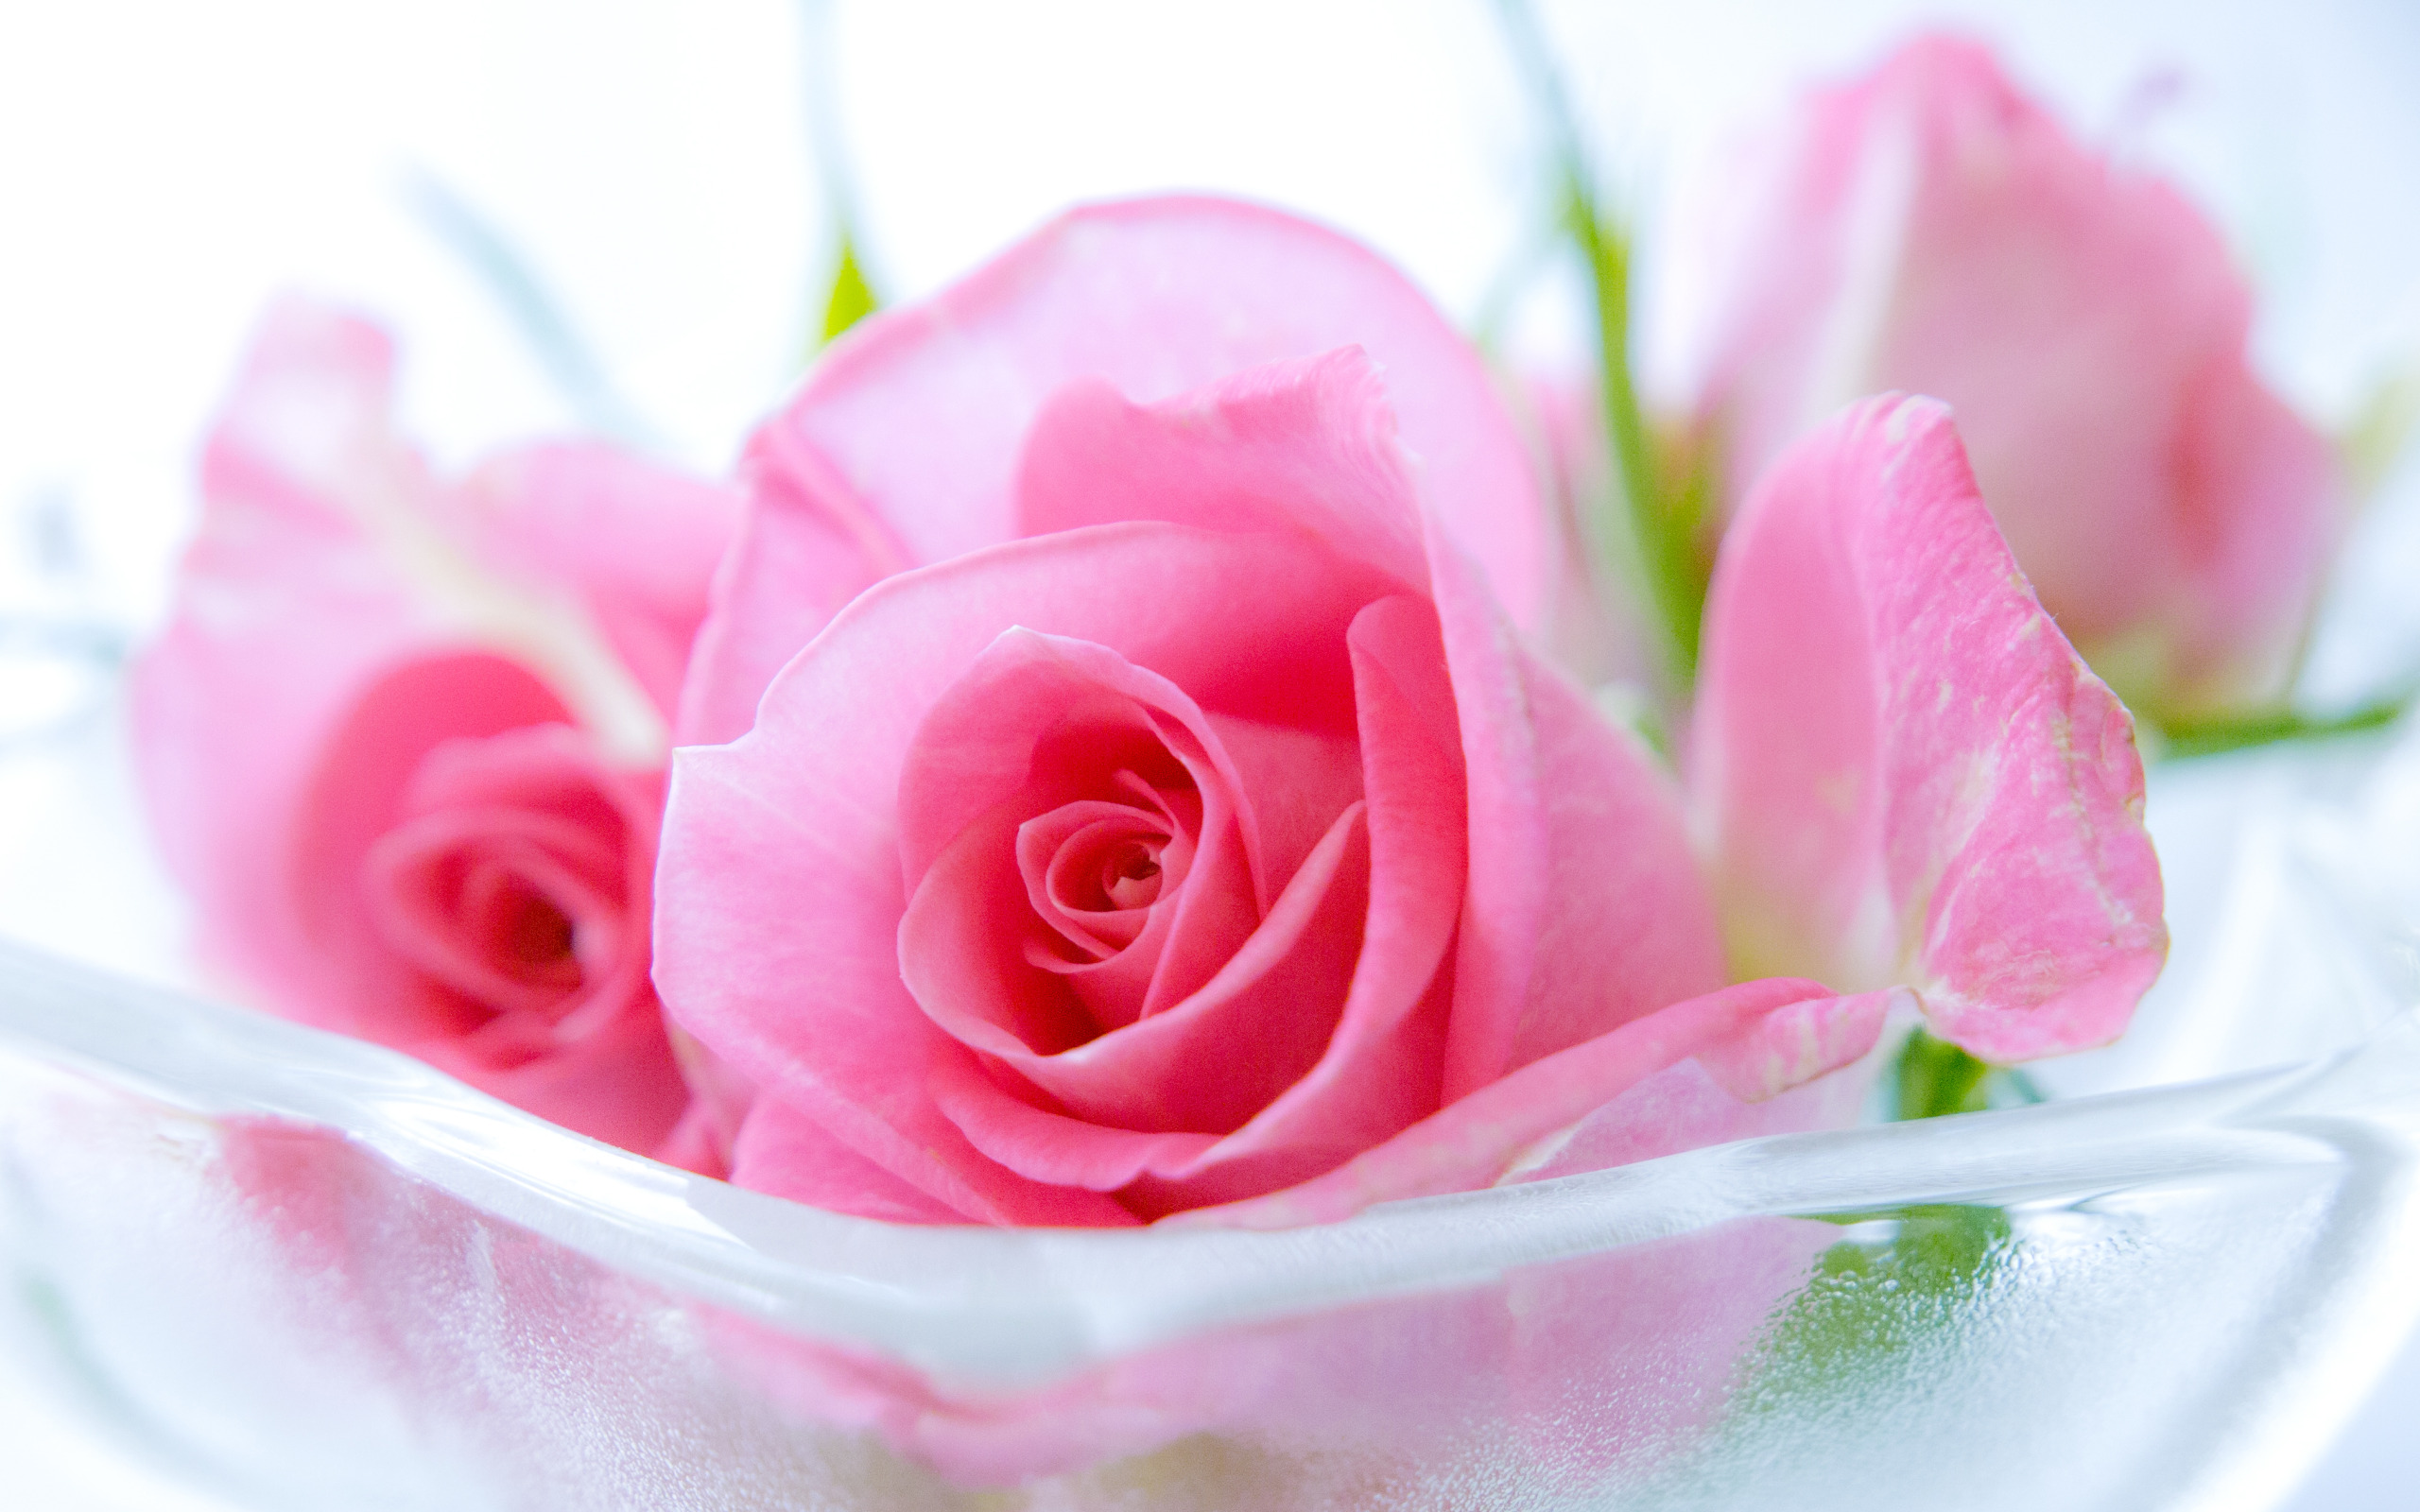 Pink Roses Widescreen 2560x1600